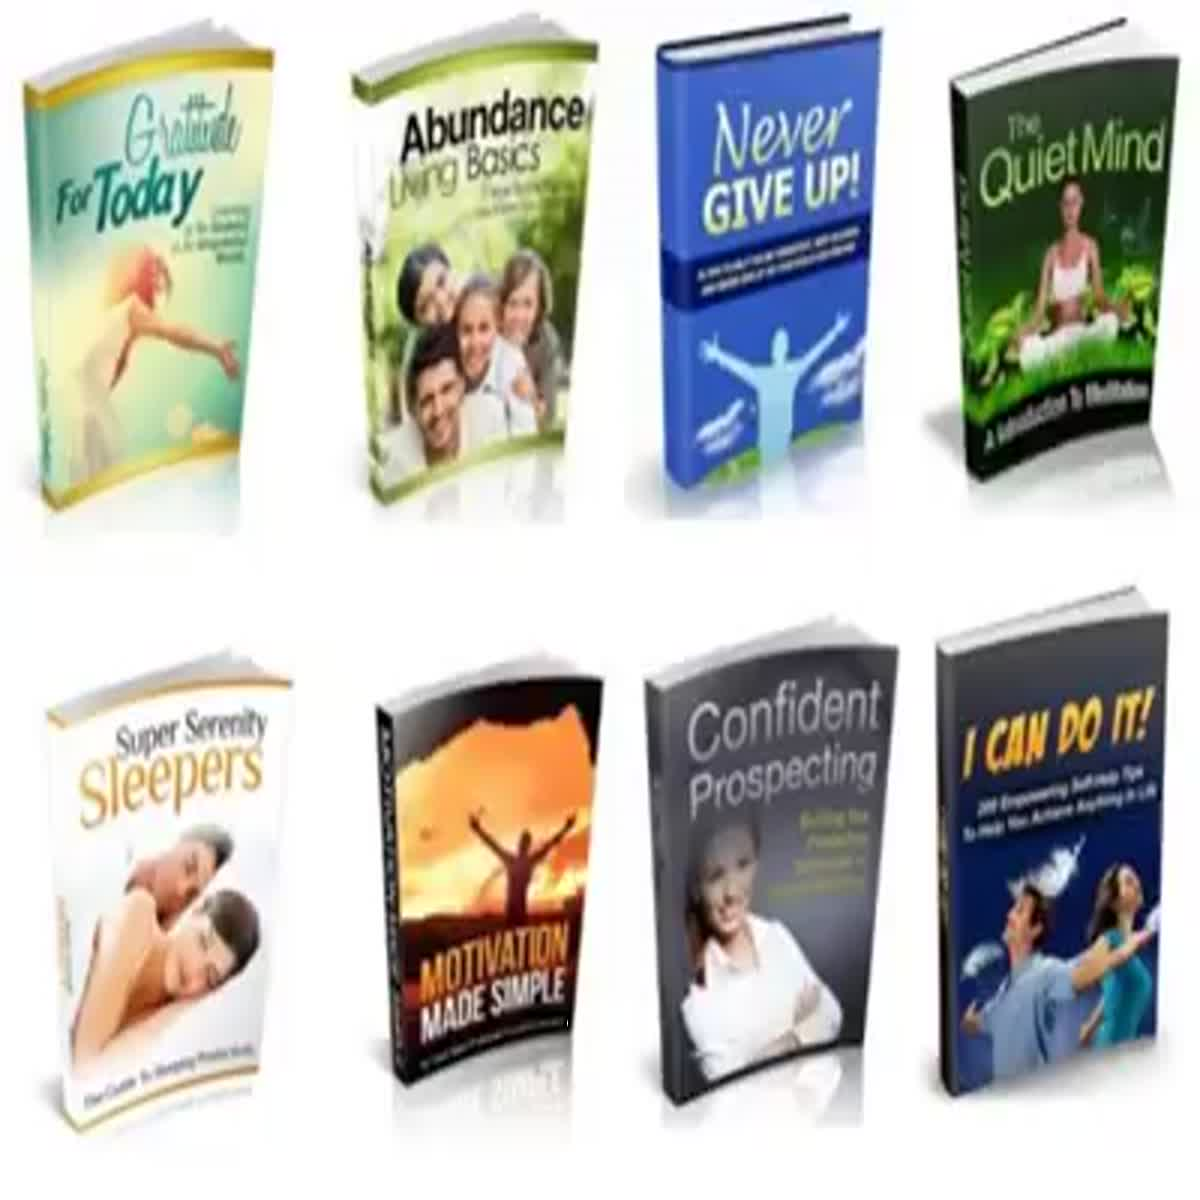 100 eBooks About Self Help & Motivational With Resale Rights